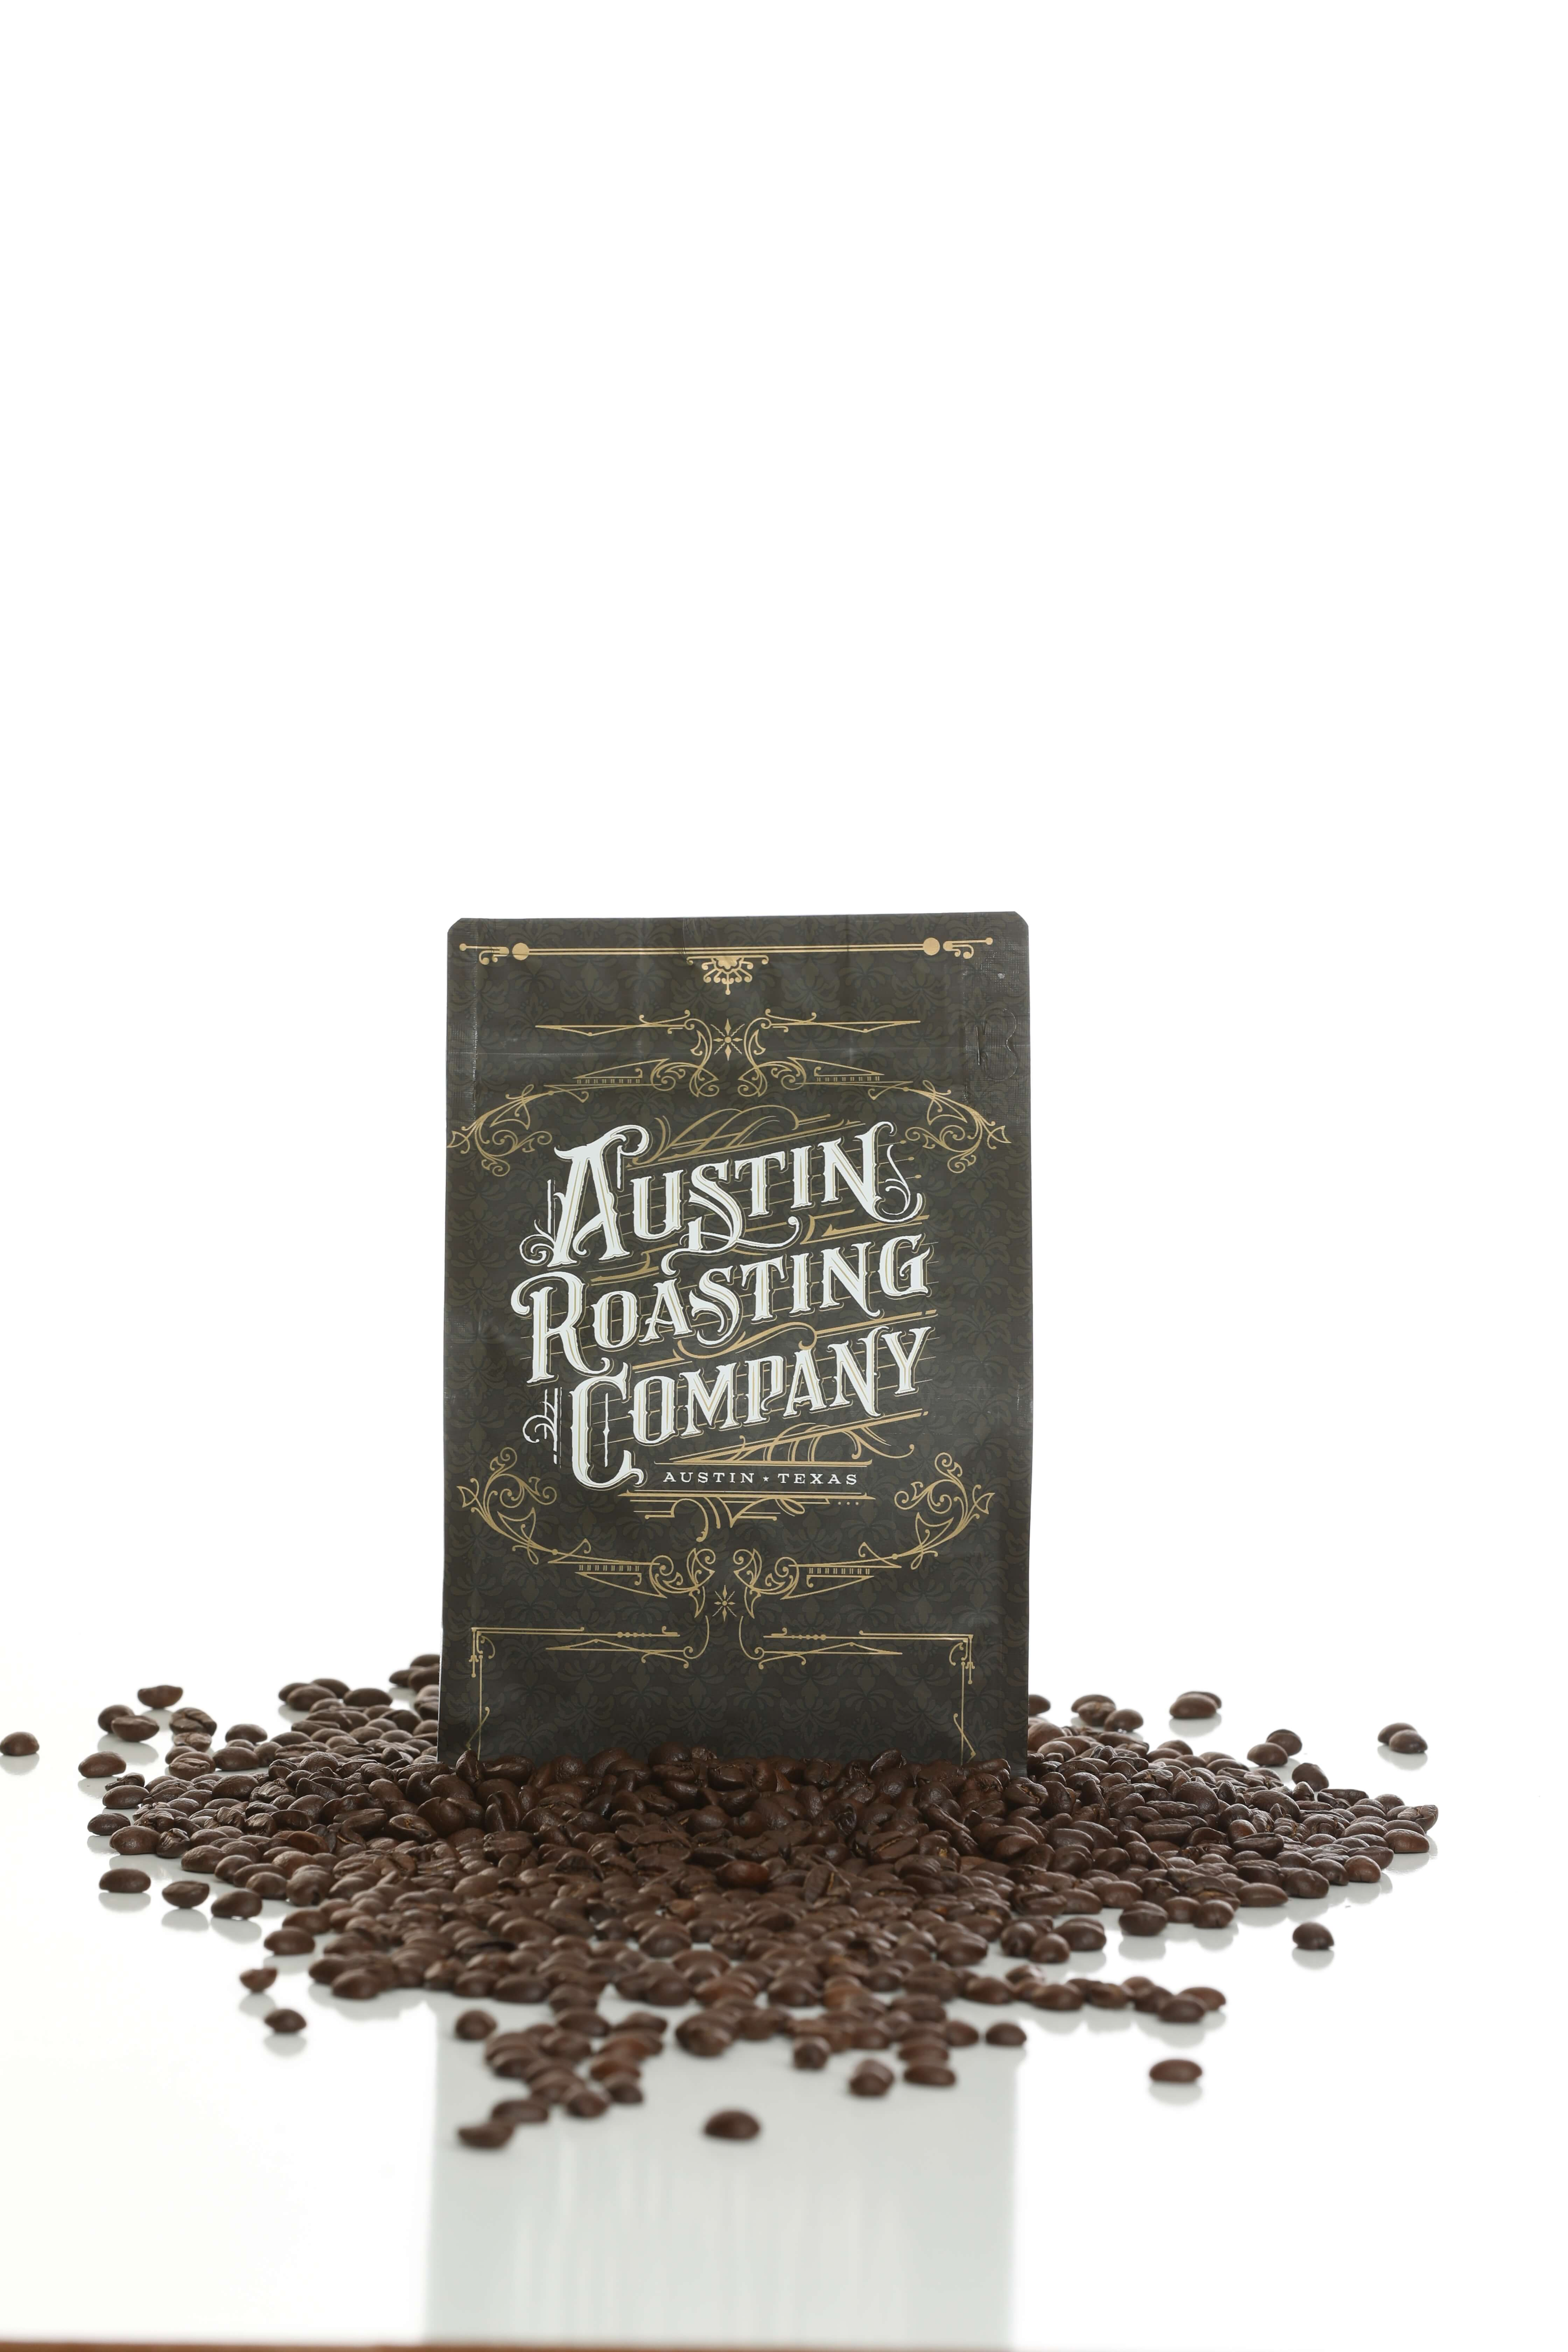 Giddy Up from Austin Roasting Company